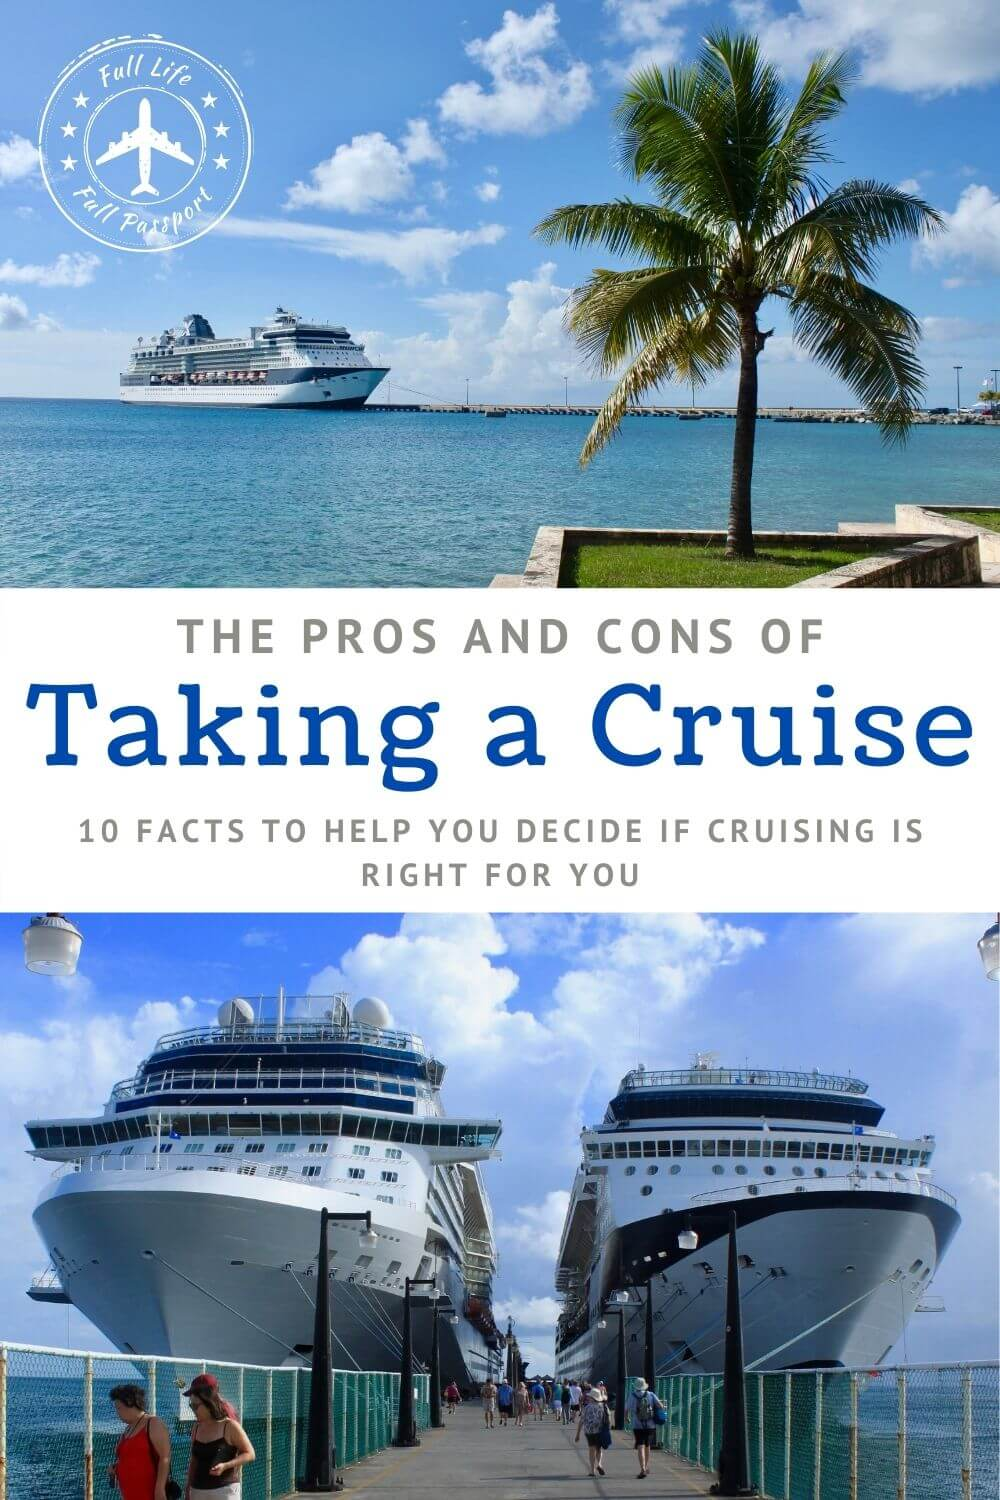 The Pros and Cons of Cruising